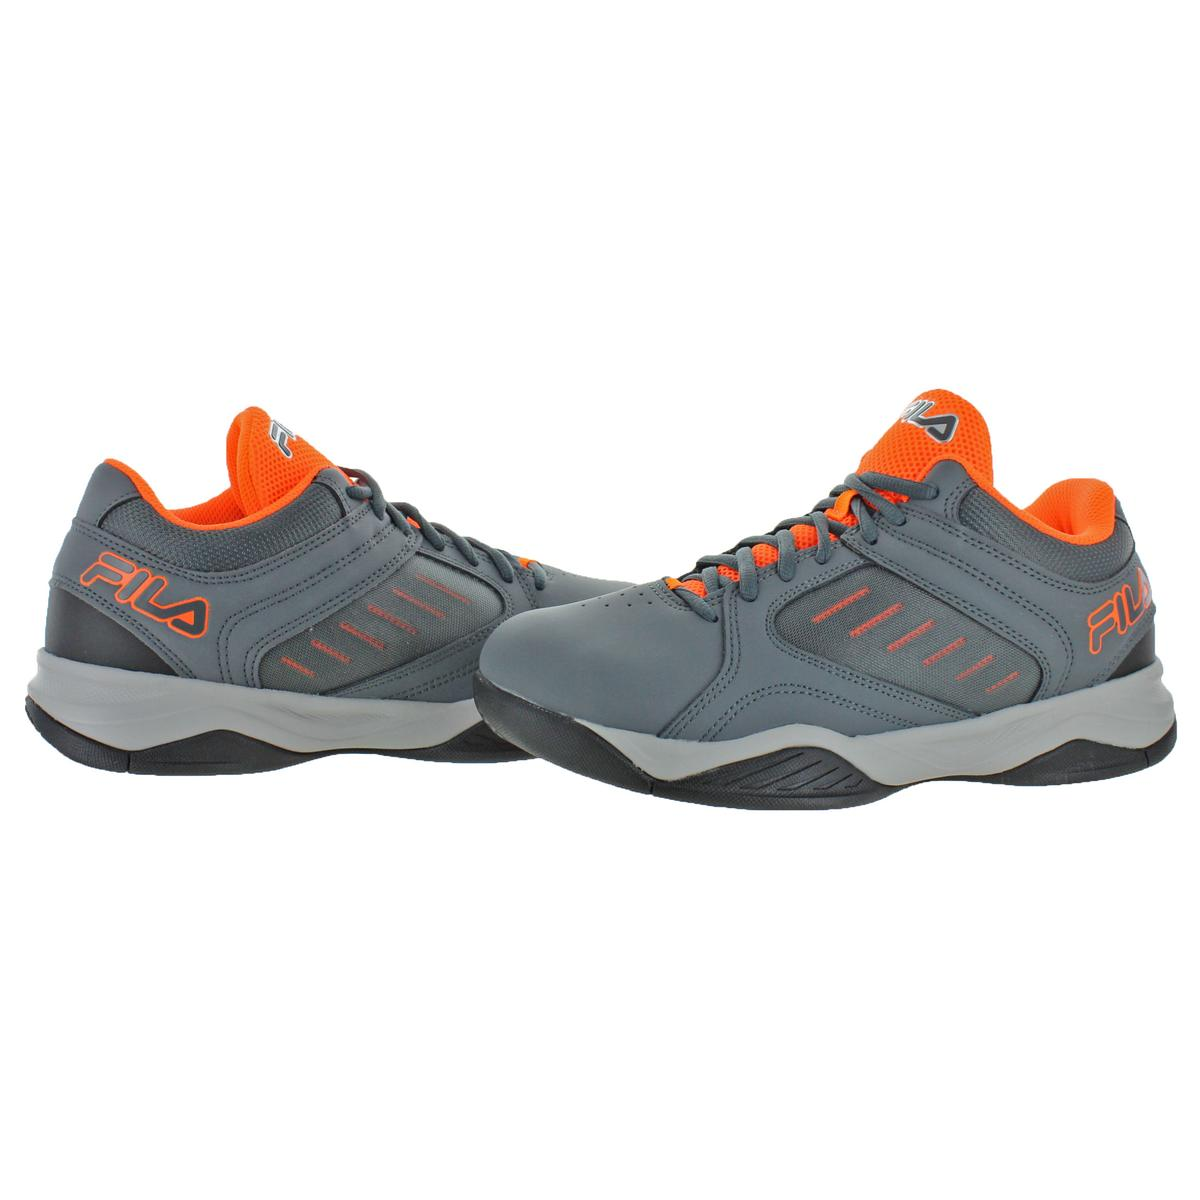 Fila-Men-039-s-Bank-Casual-Lace-Up-Low-Top-Court-Basketball-Athletic-Shoes thumbnail 6